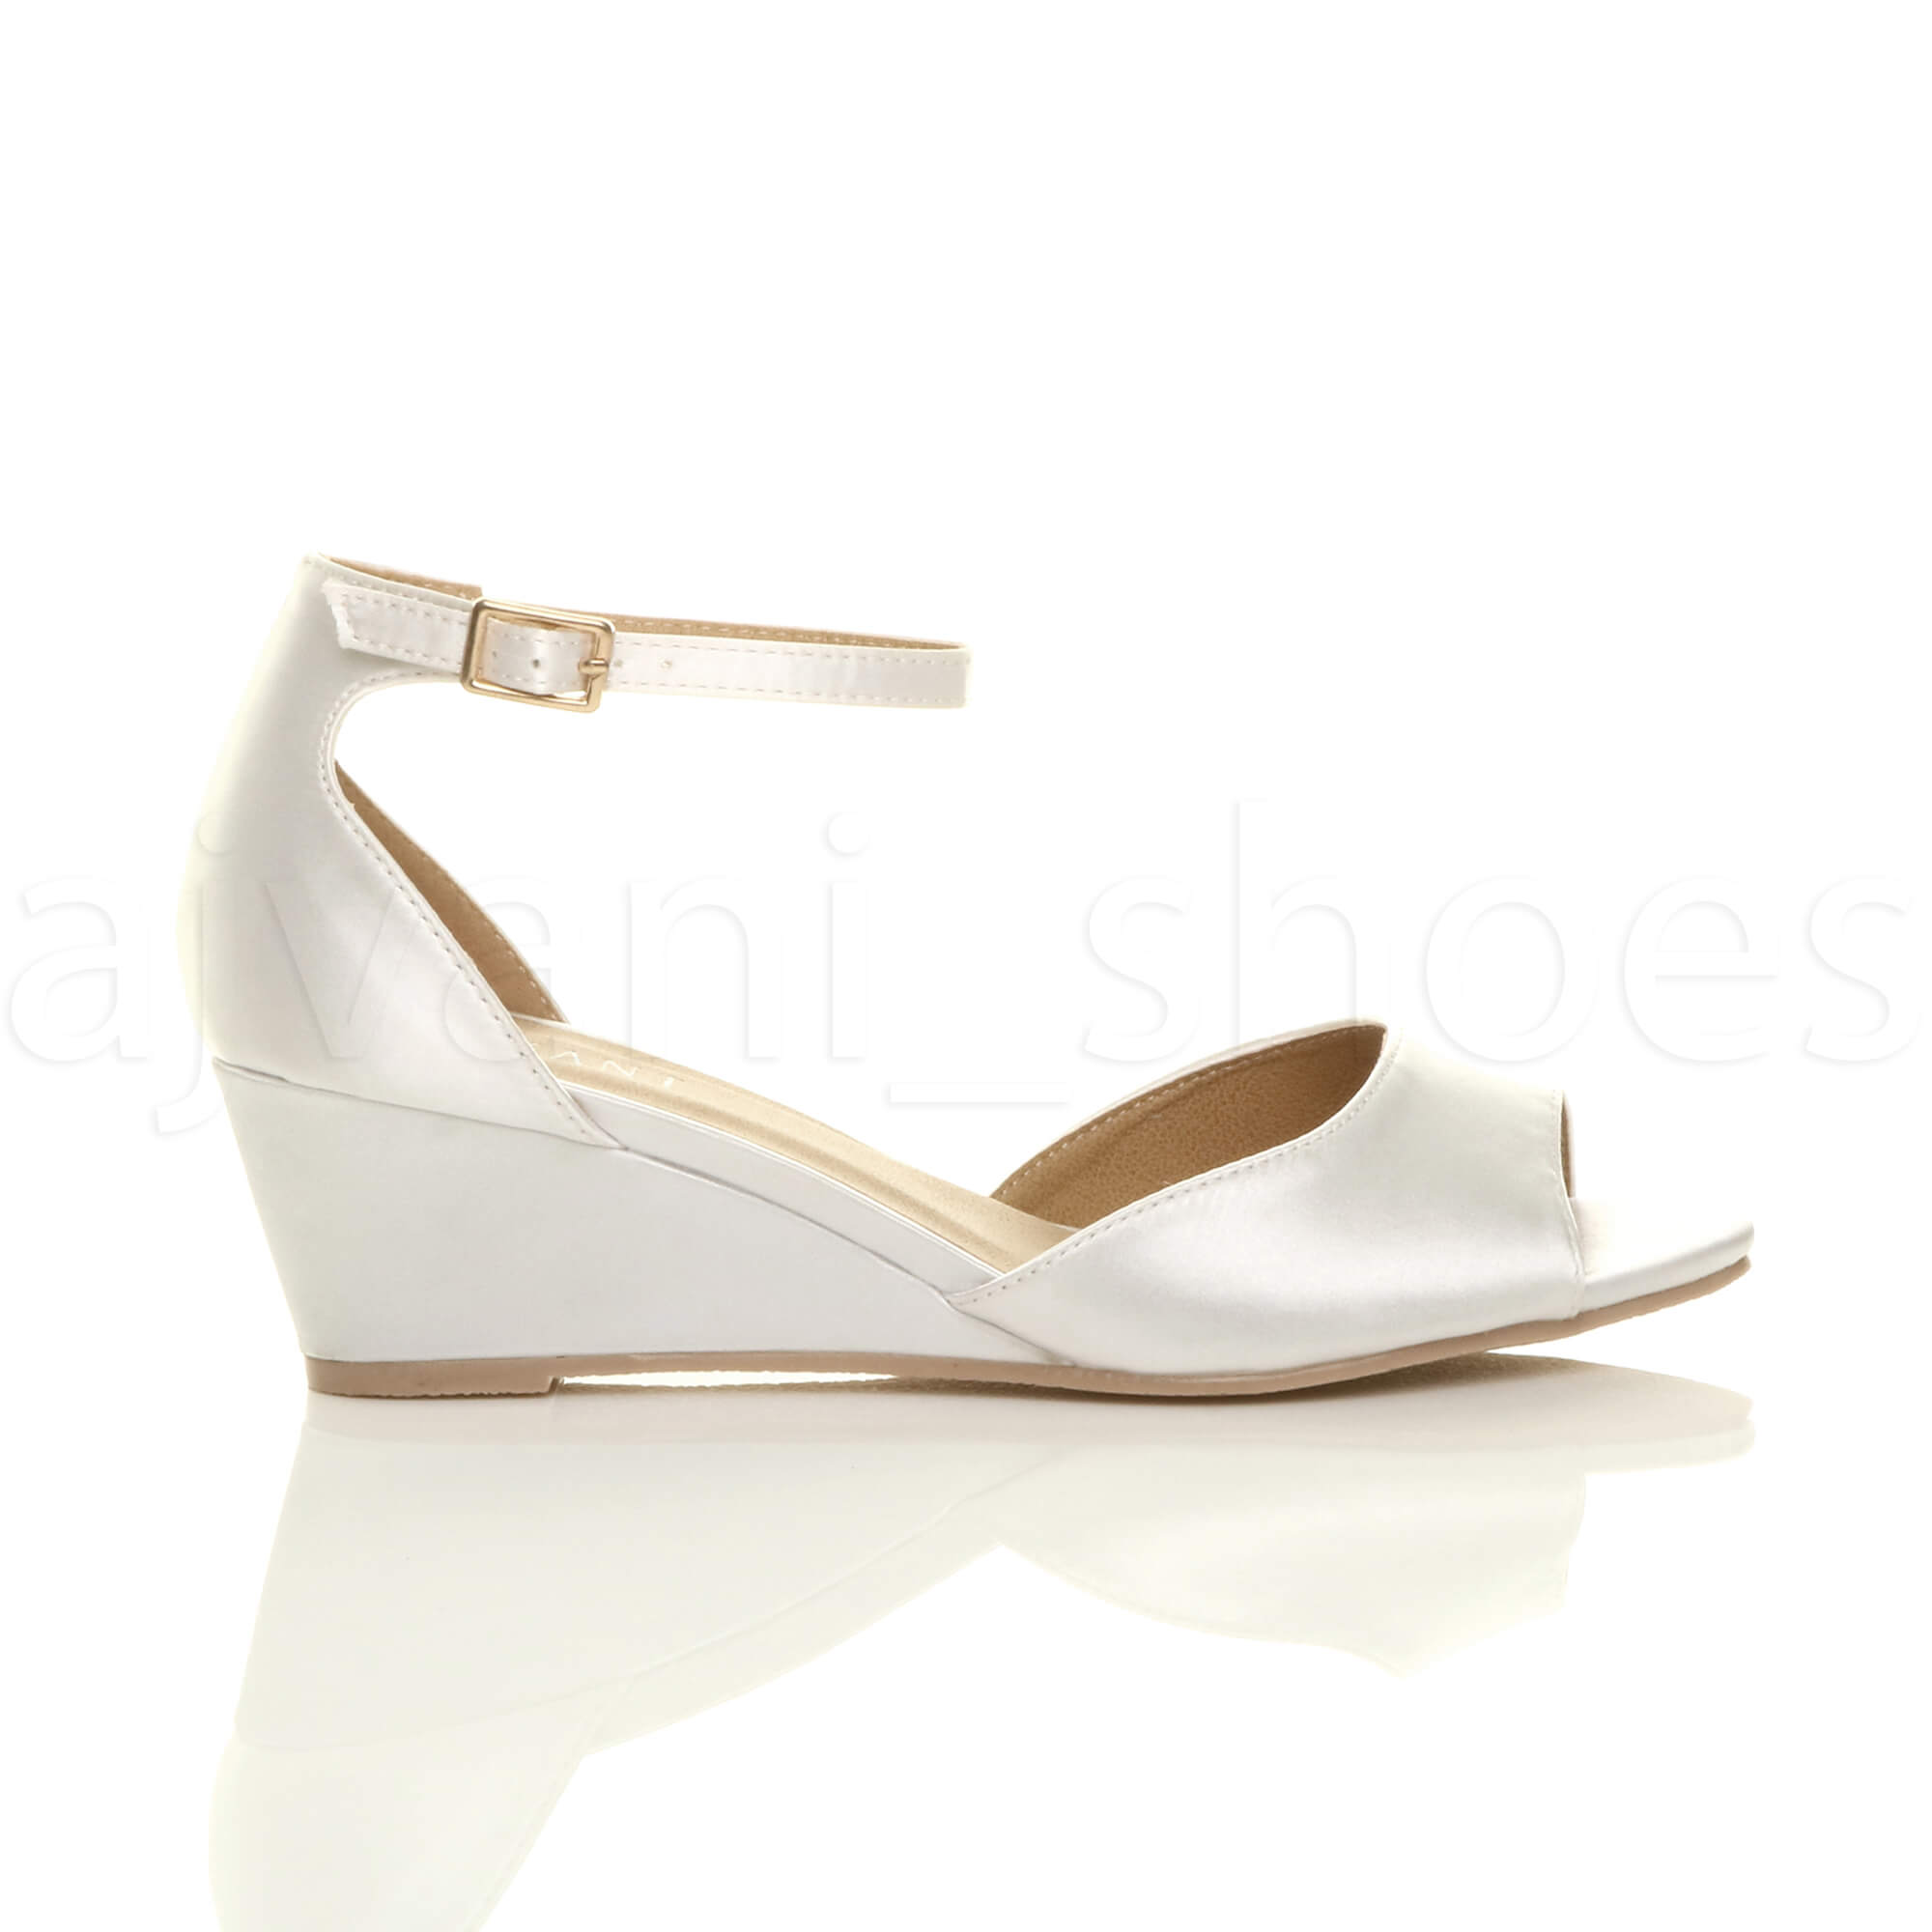 WOMENS-LADIES-LOW-MID-WEDGE-HEEL-ANKLE-STRAP-SMART-CASUAL-EVENING-SANDALS-SIZE thumbnail 171